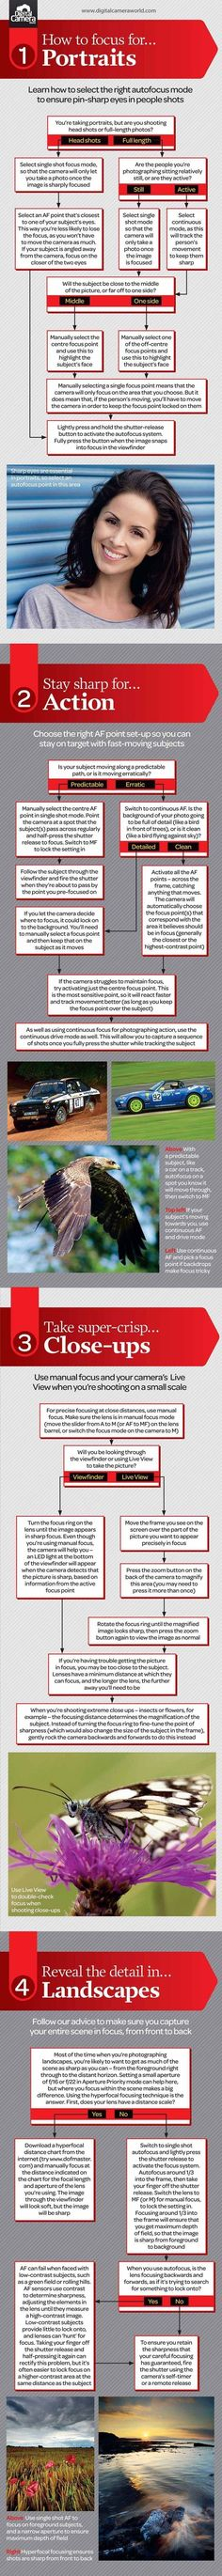 How to focus your camera for any subject or scene: free photography cheat sheet #photography101